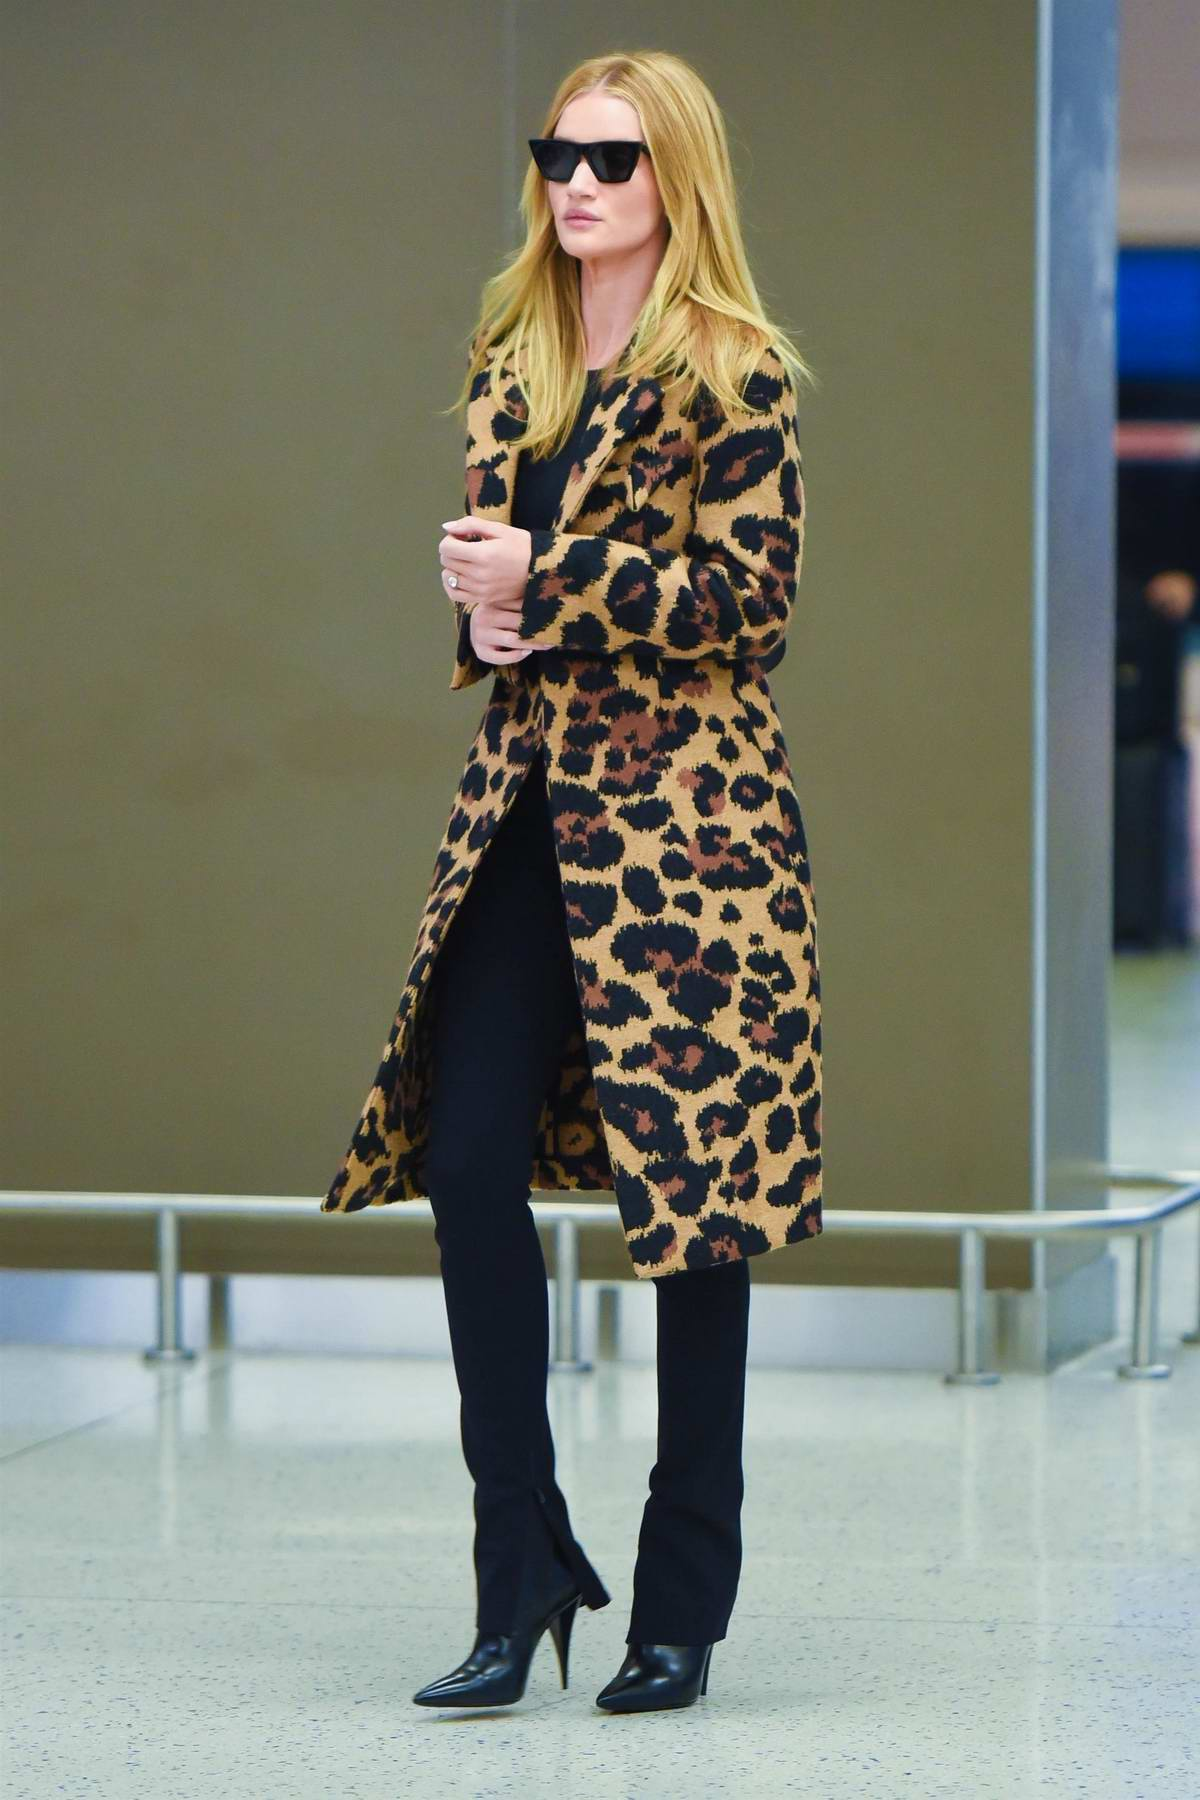 Rosie Huntington-Whiteley looks stylish in an animal print coat as she arrives at JFK Airport in New York